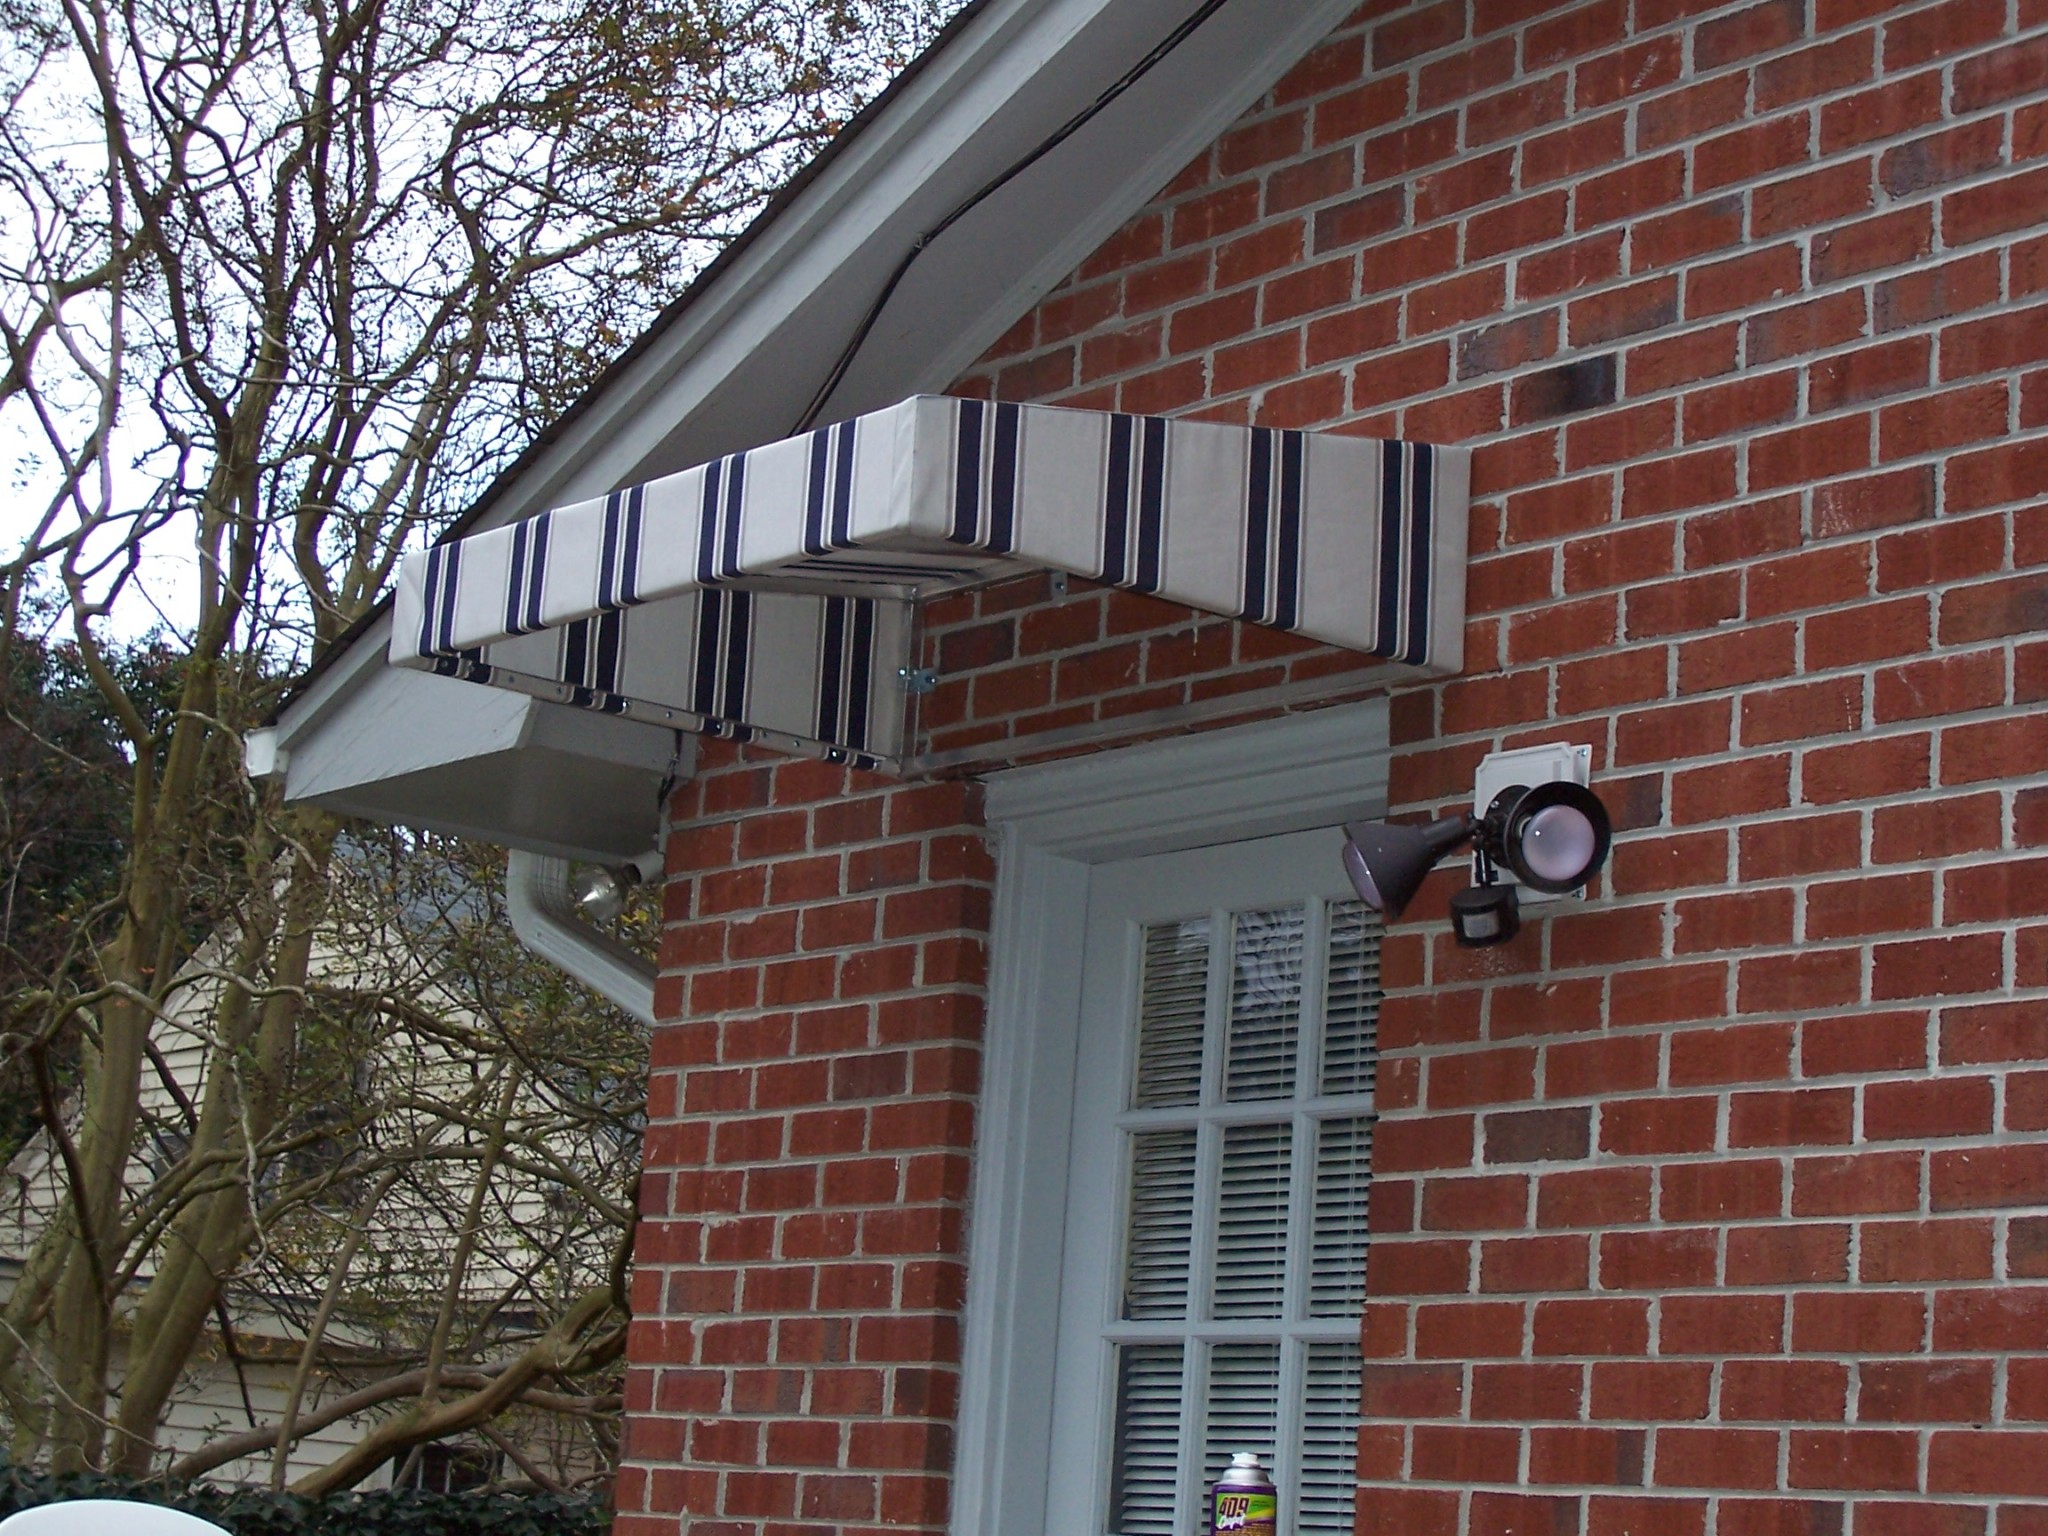 Residential Greenville Awning Amp Canopy Greenville Nc